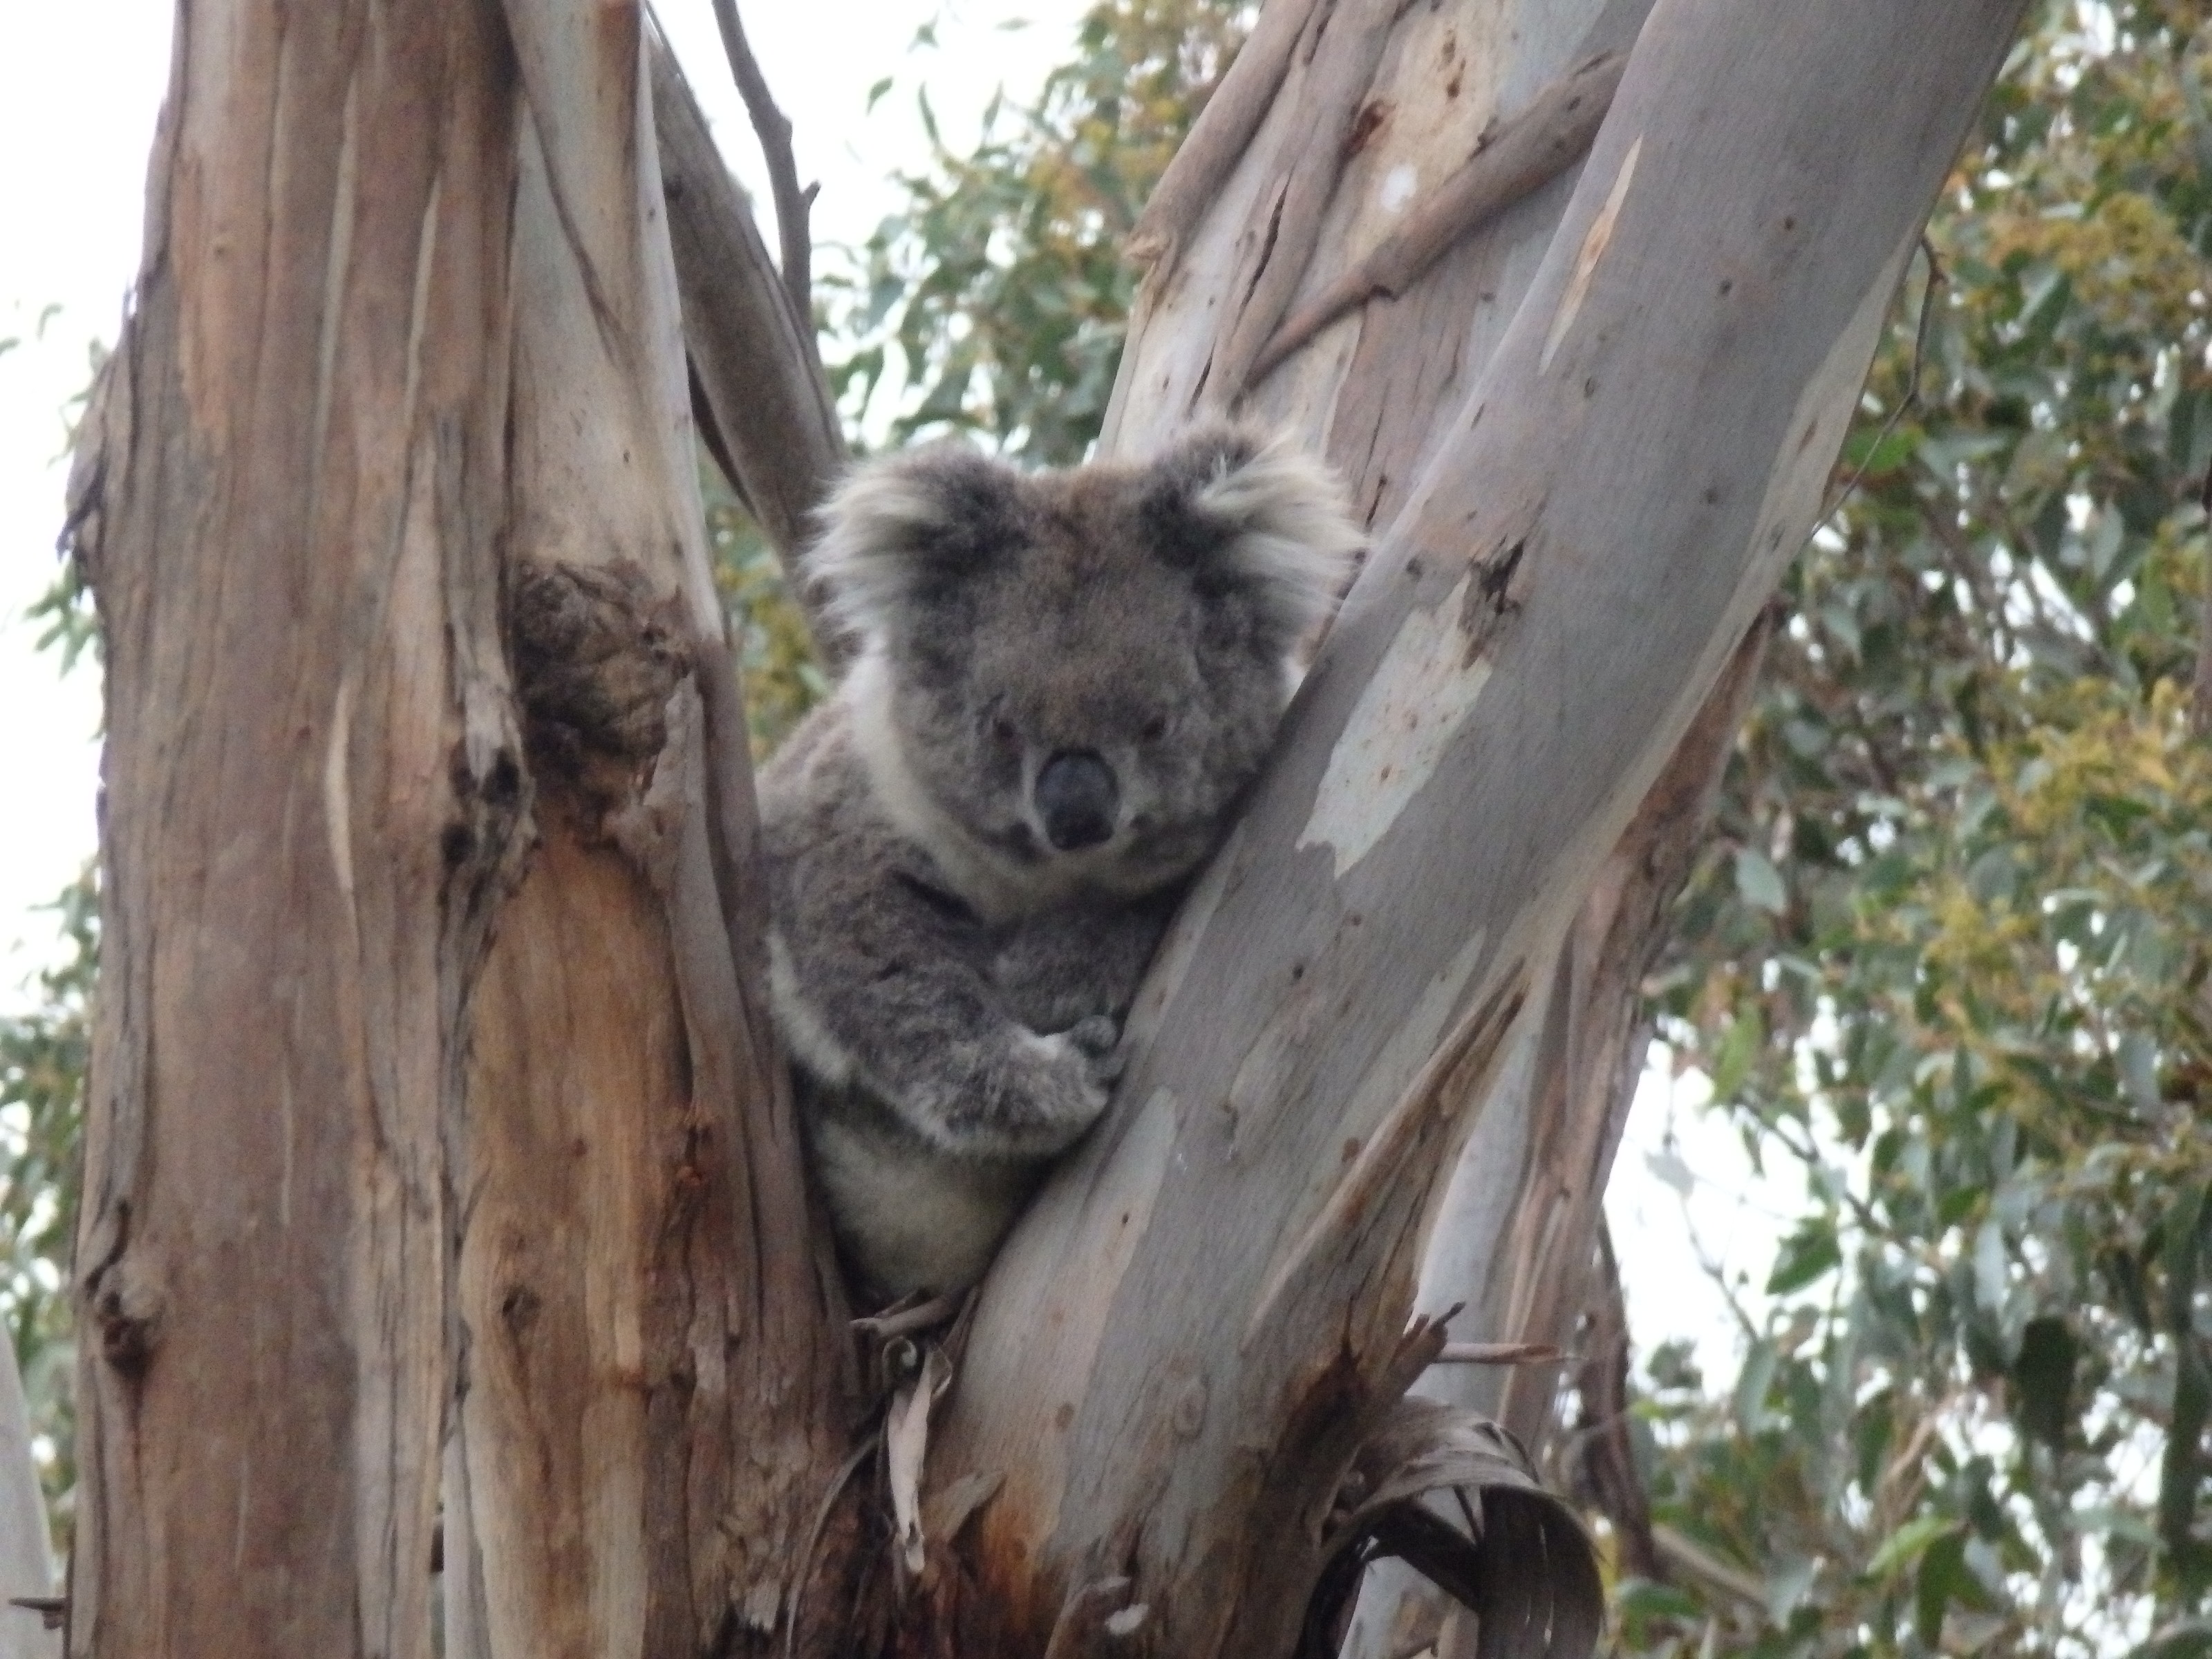 MP Koalas conservation group